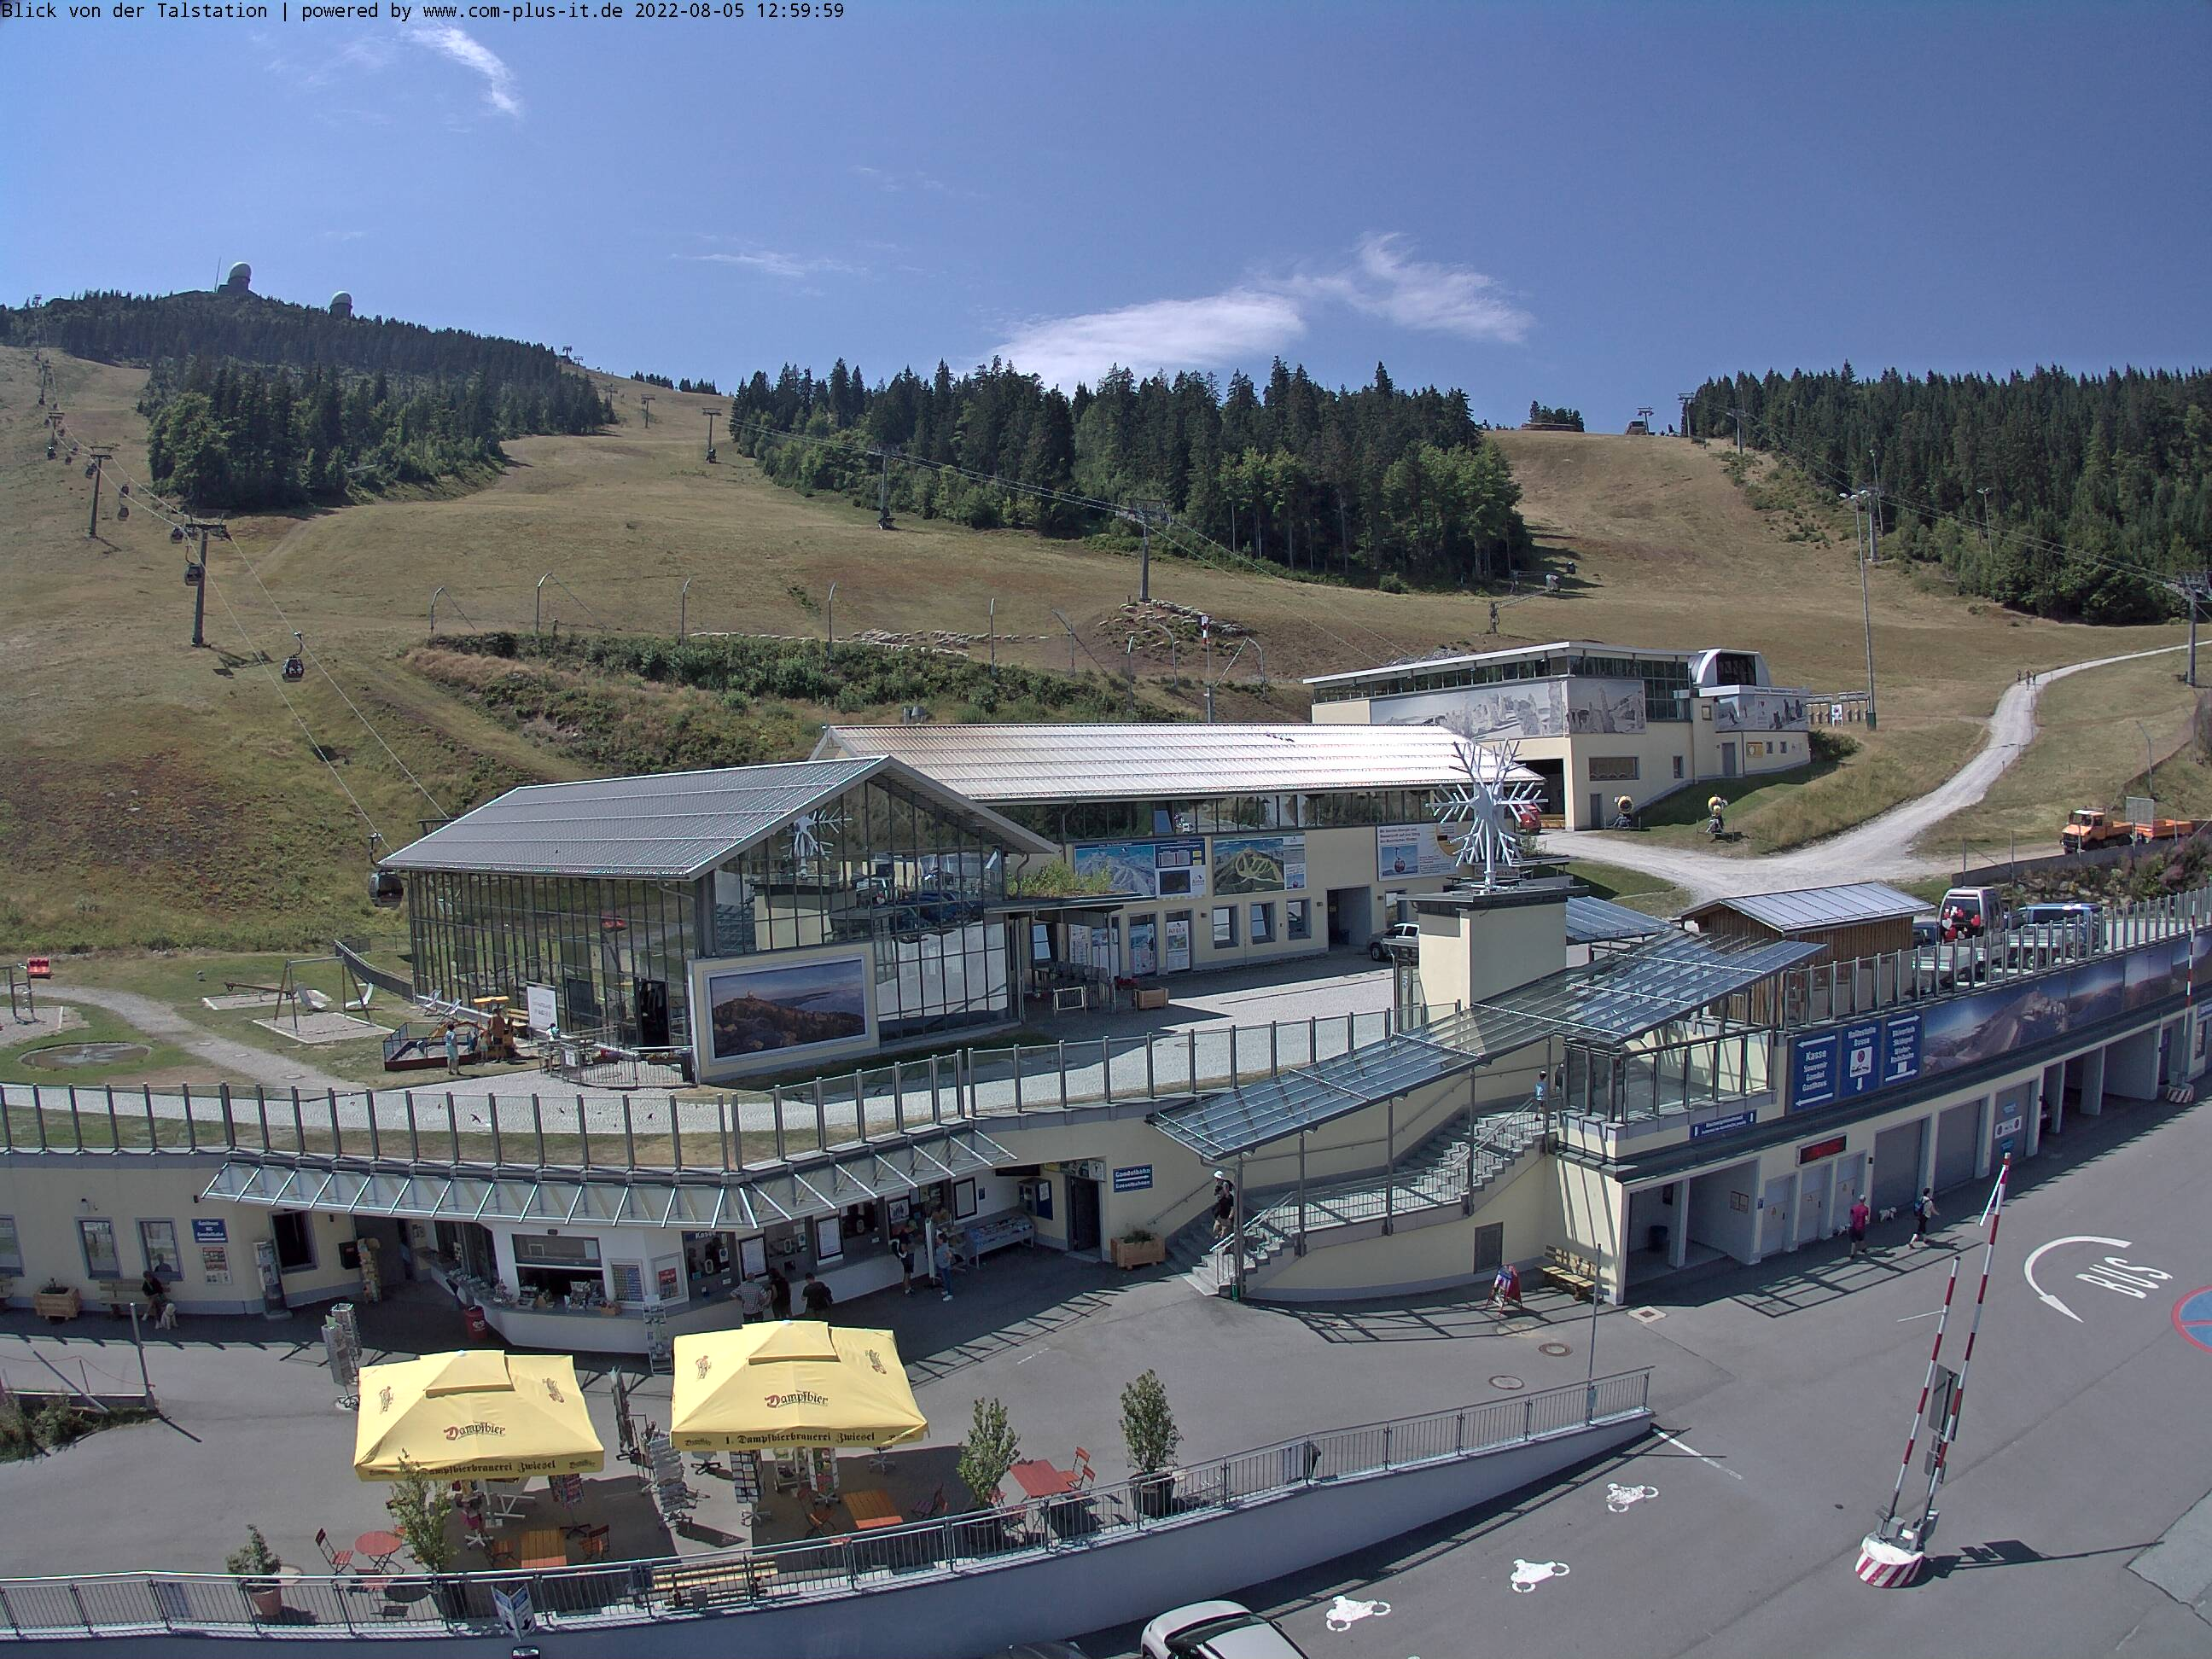 Webcam Großer Arber Talstation